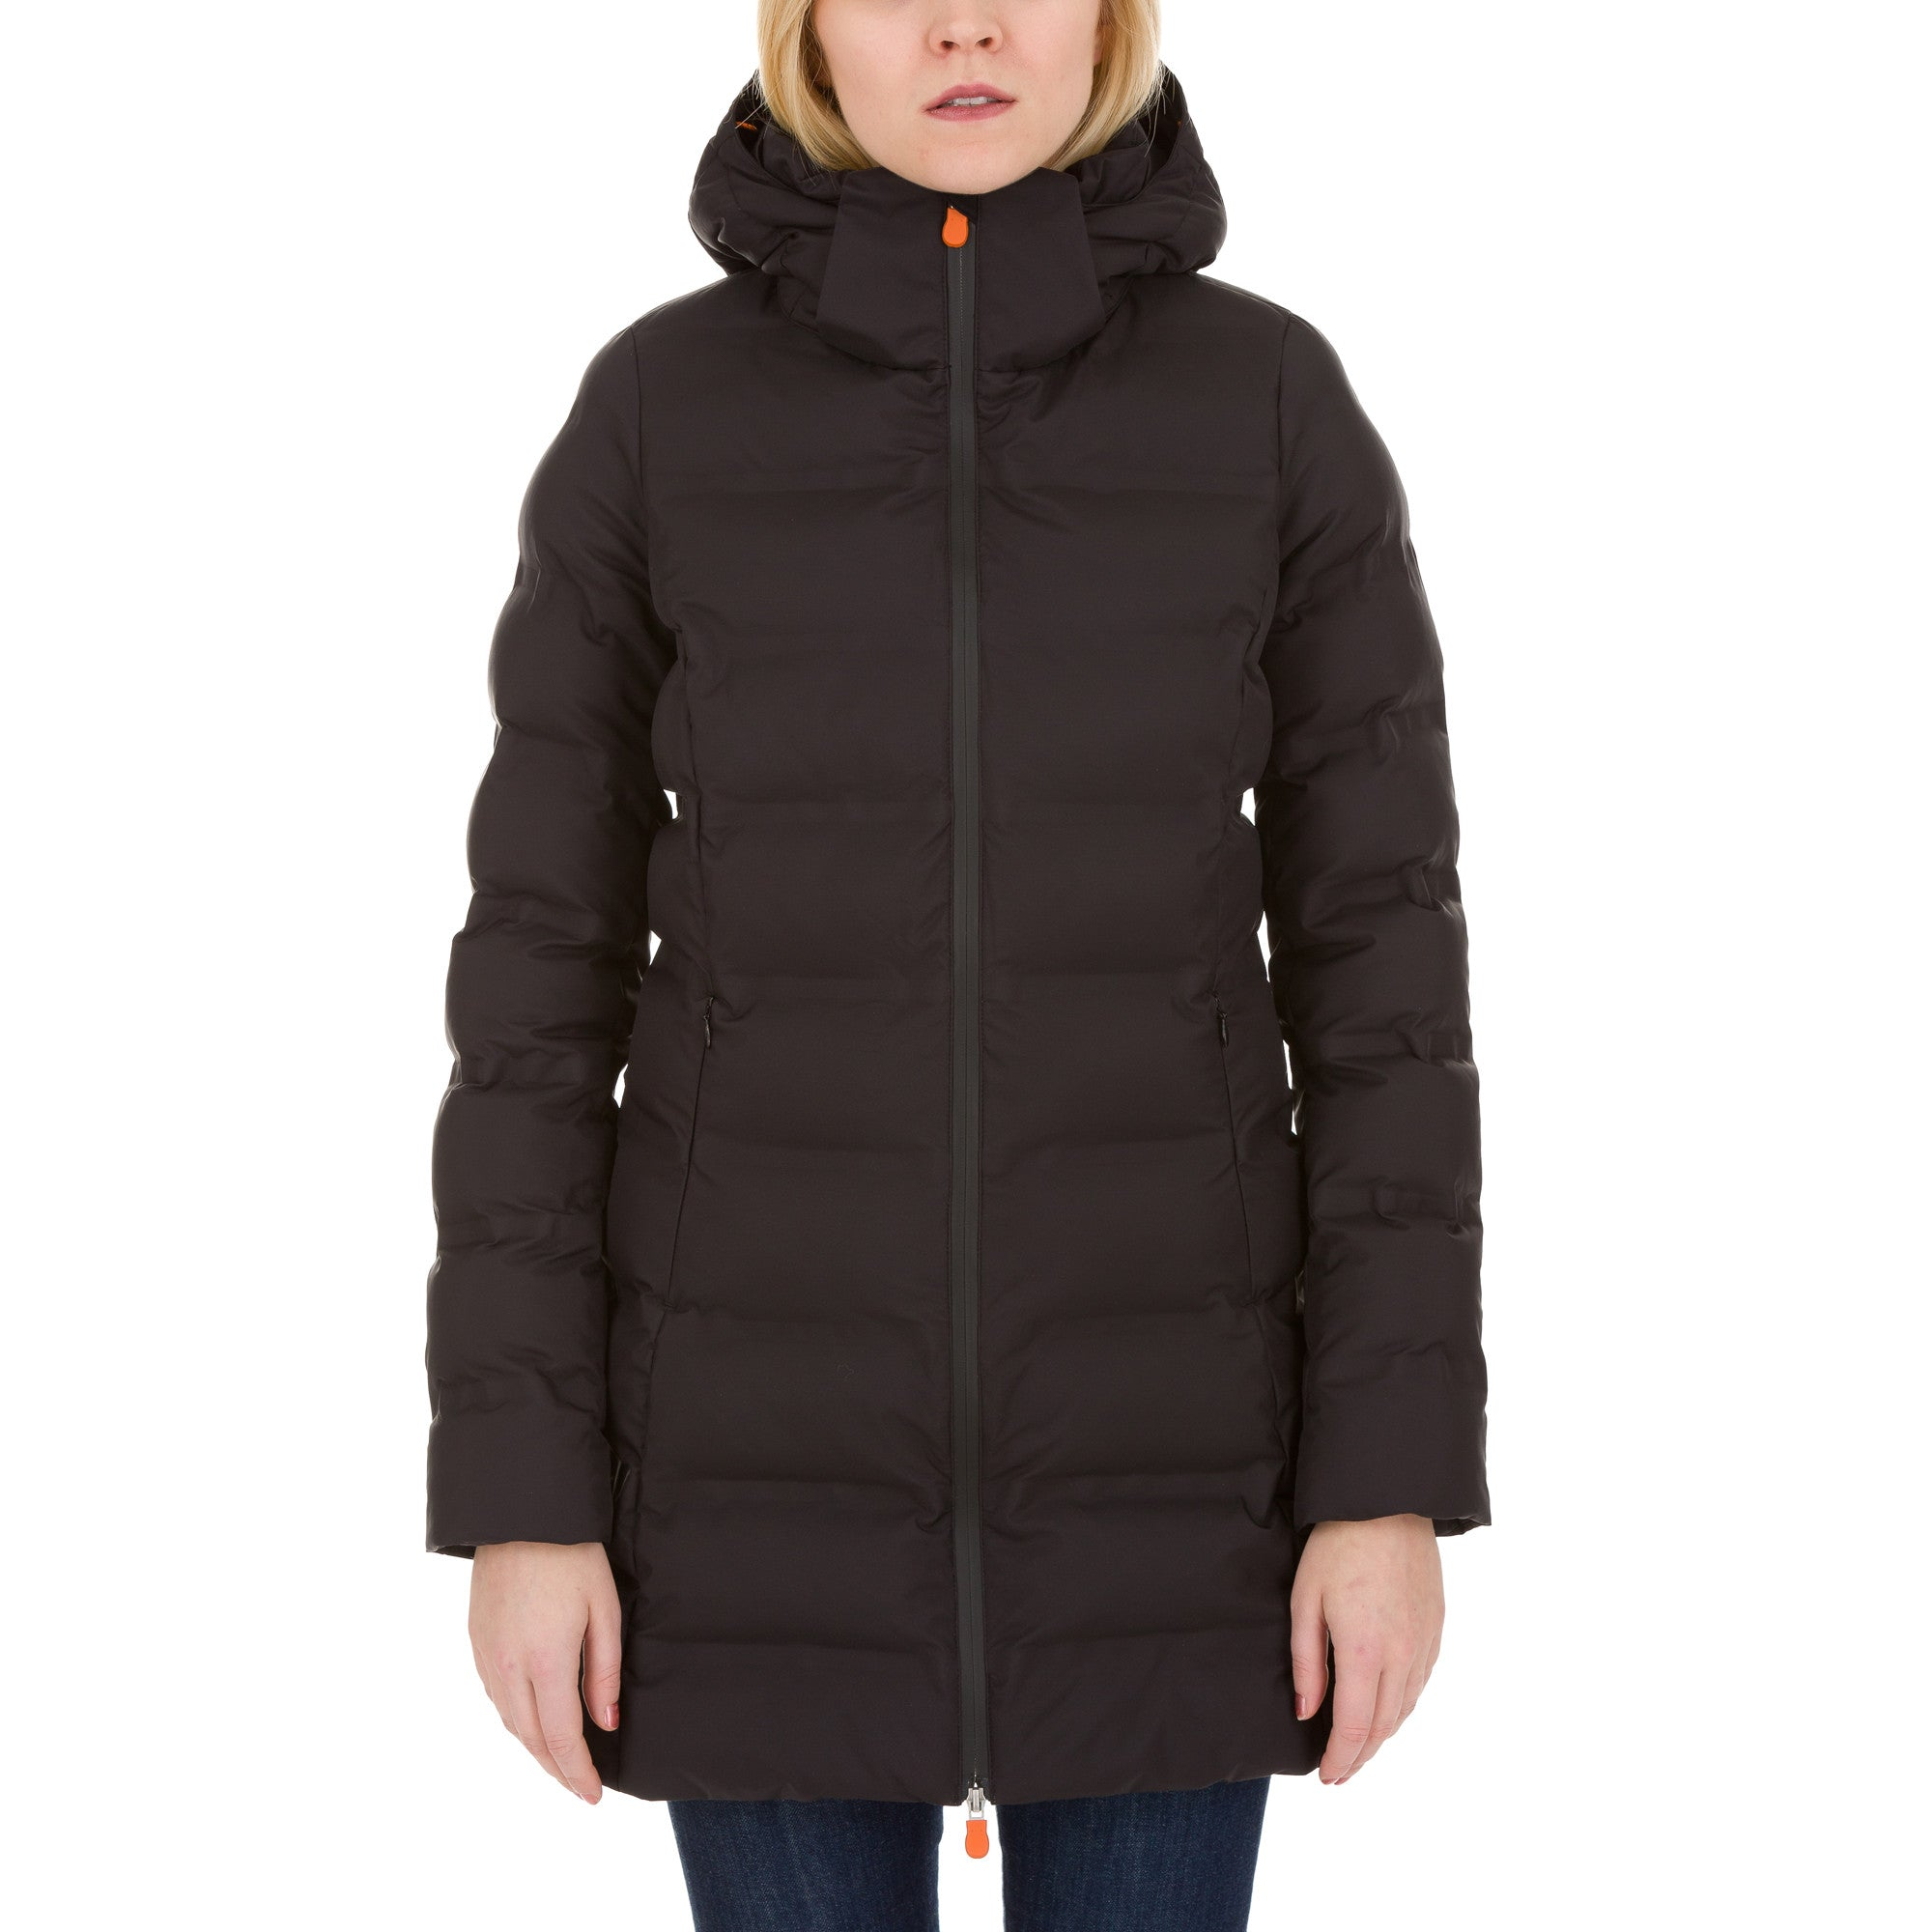 9d1eae14ba Save The Duck Women's Long Puffer Winter Coat In Black - Save the Duck